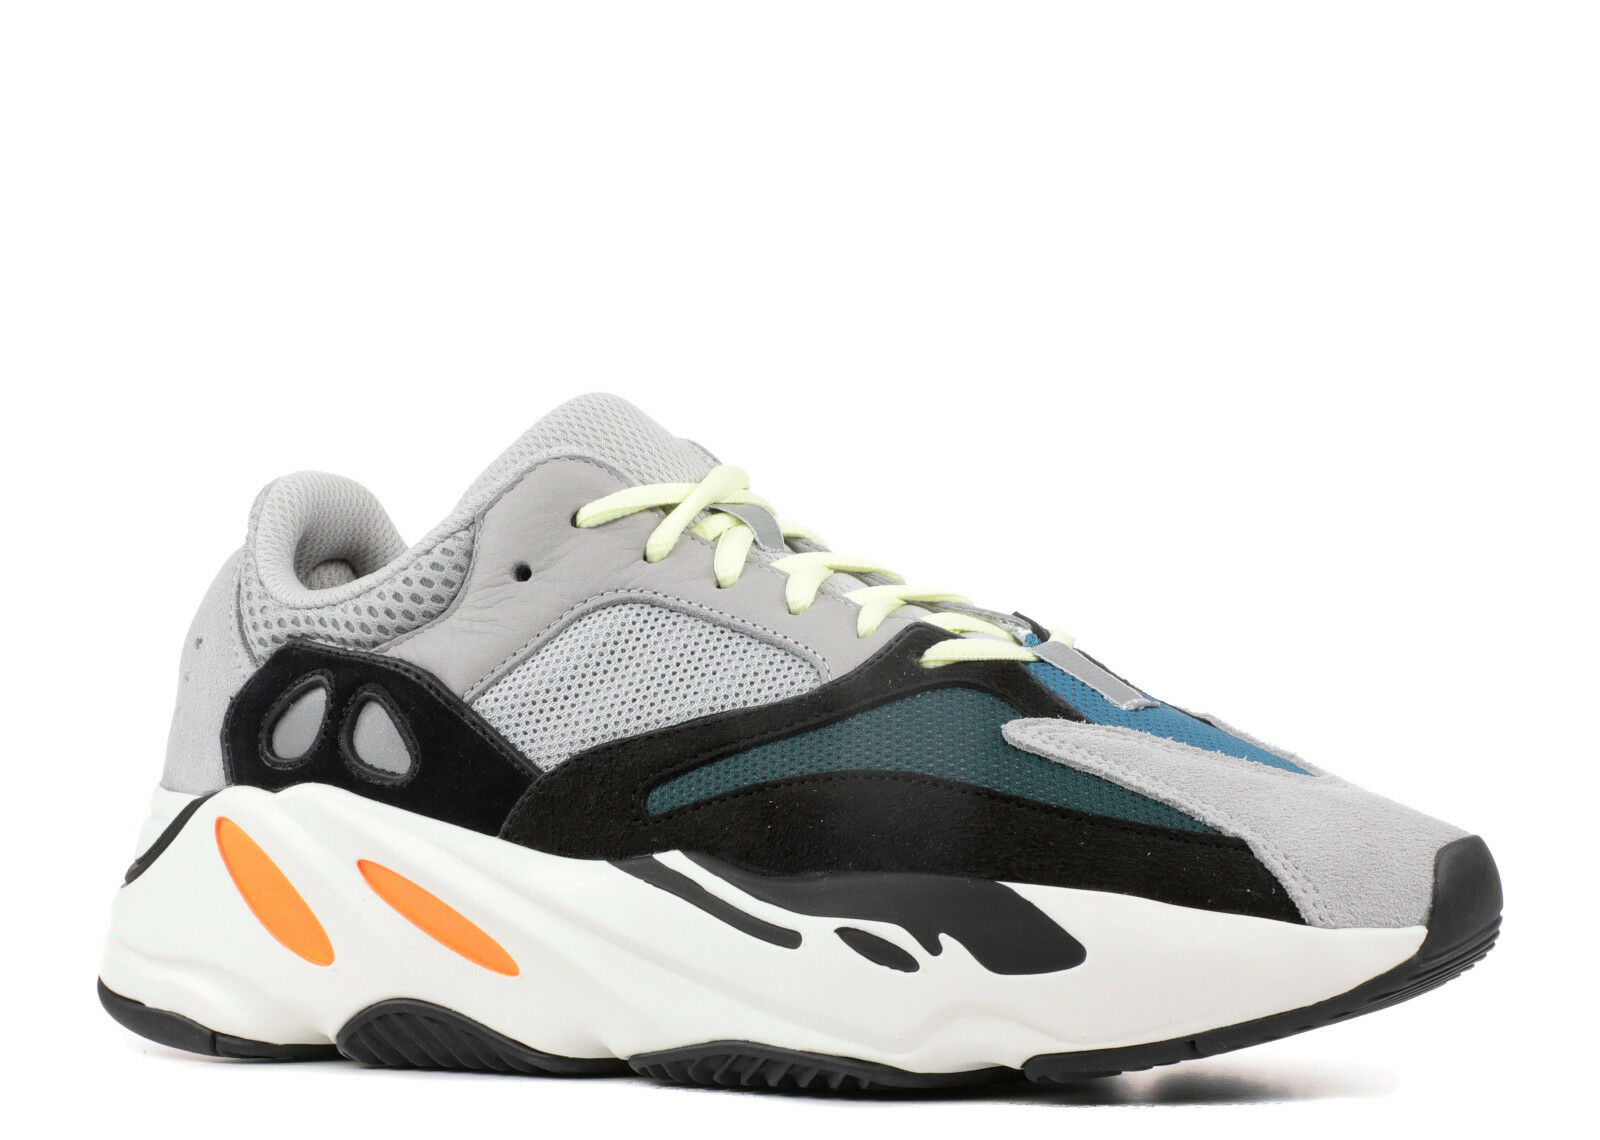 Adidas Yeezy Boost 700 Wave Runner OG Grey Black orange US 8  3